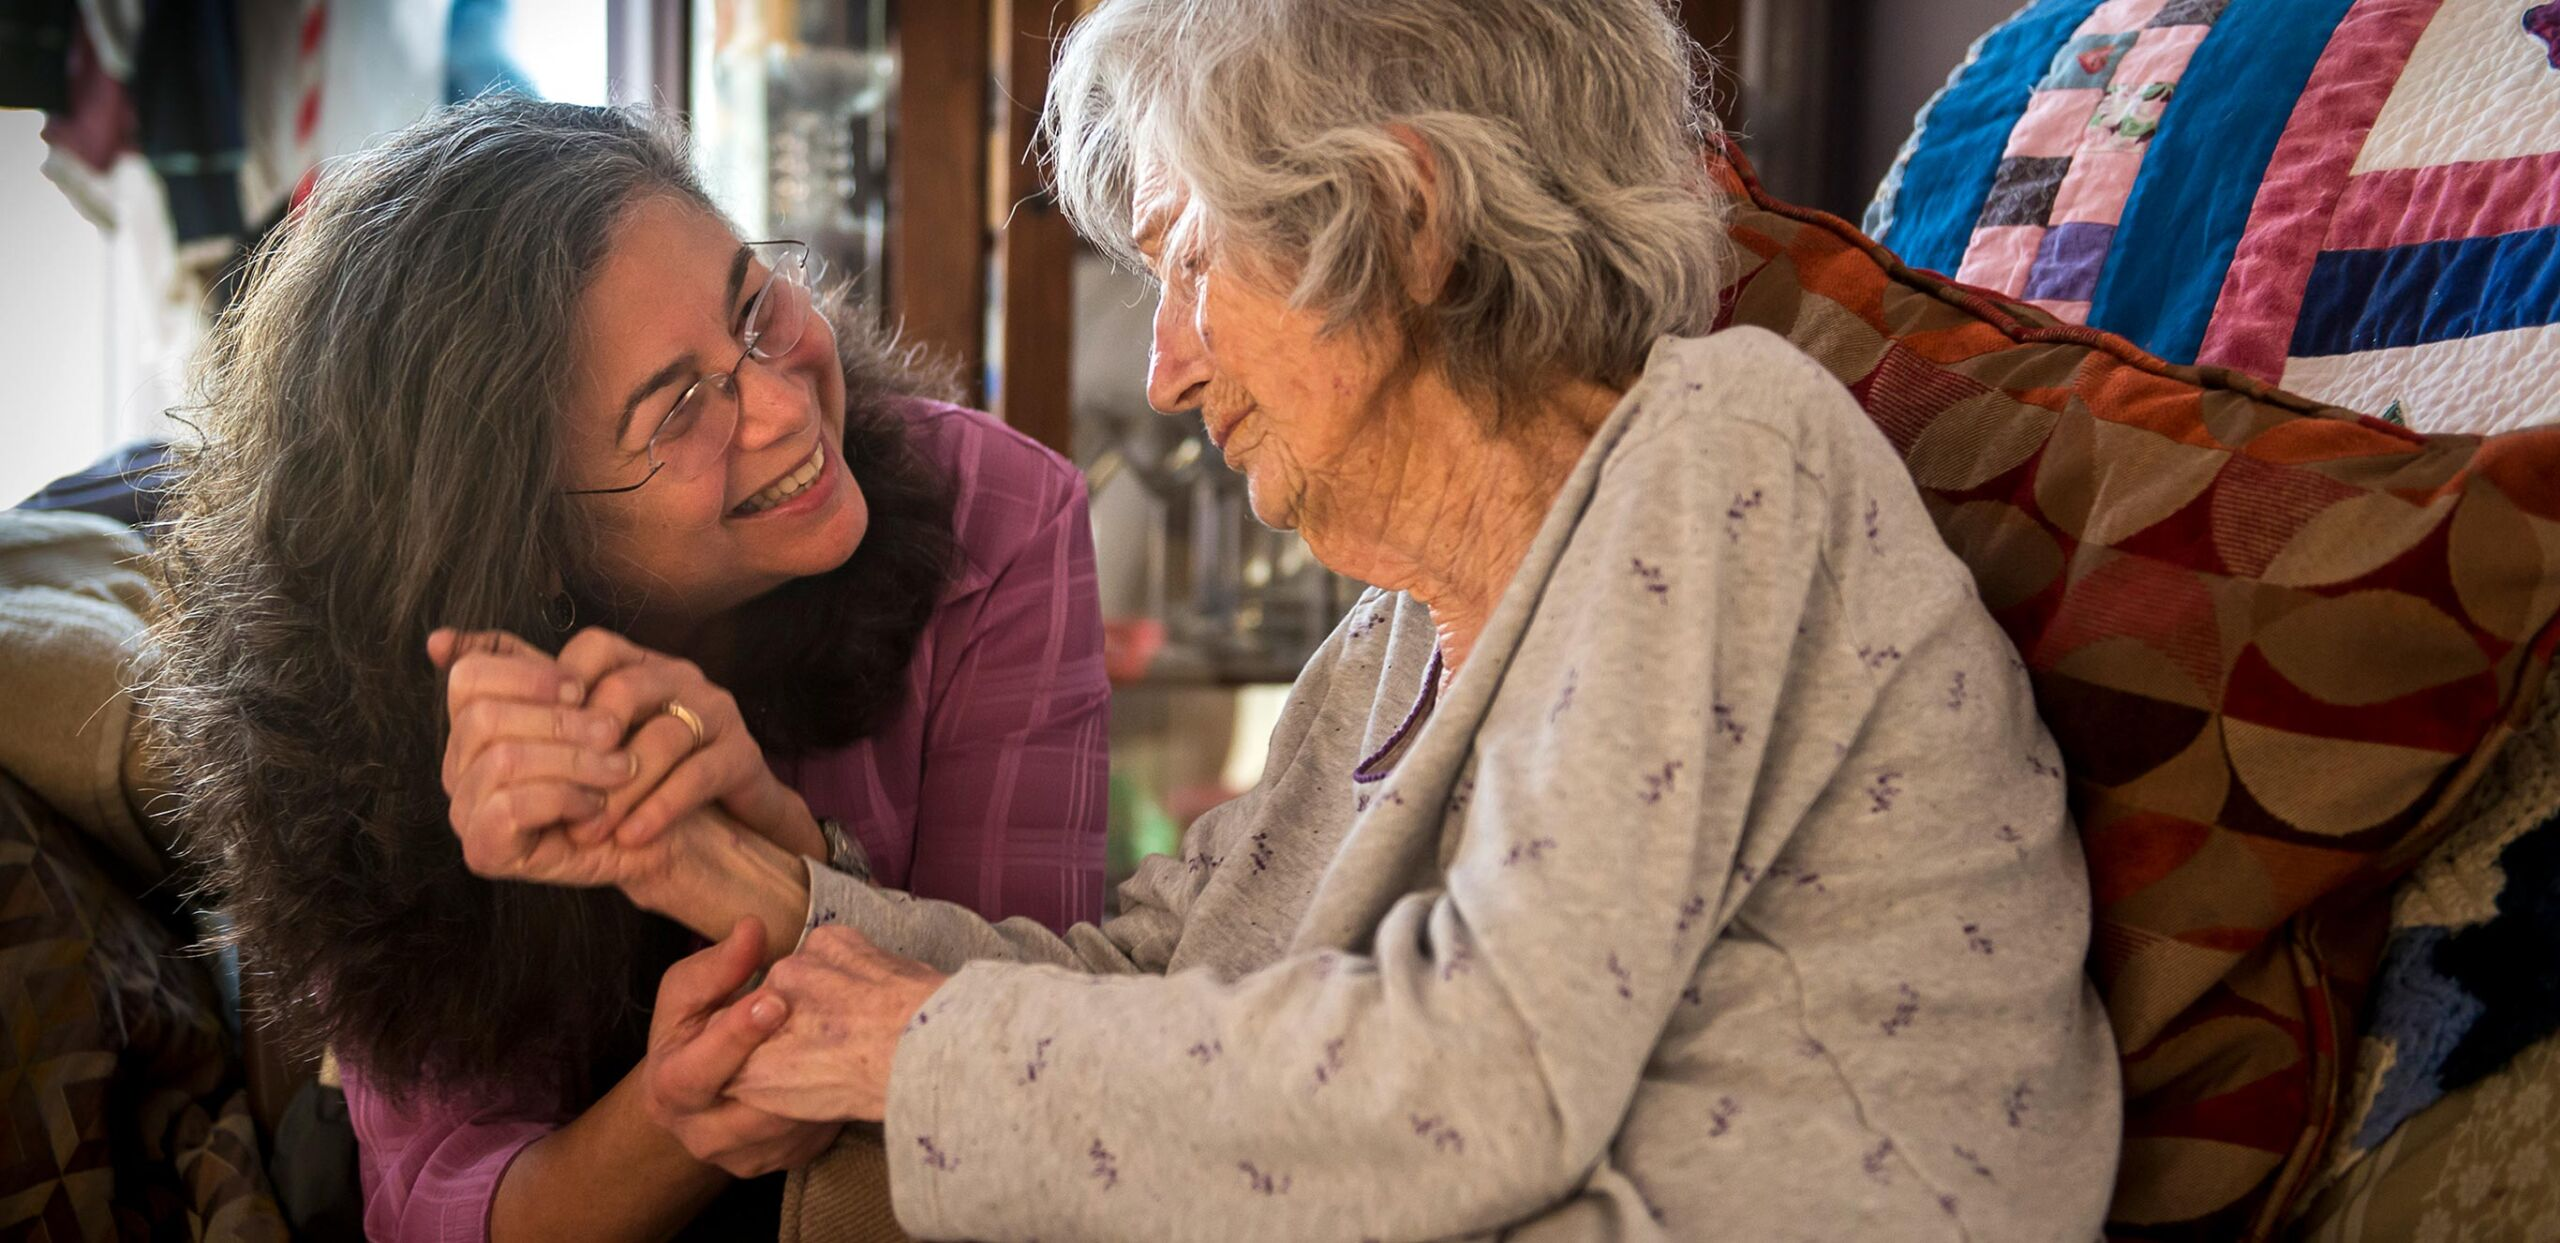 Hospice nurse works with elderly woman in her home, Cooley Dickinson Medical Group VNA & Hospice, Northampton, MA 01060.